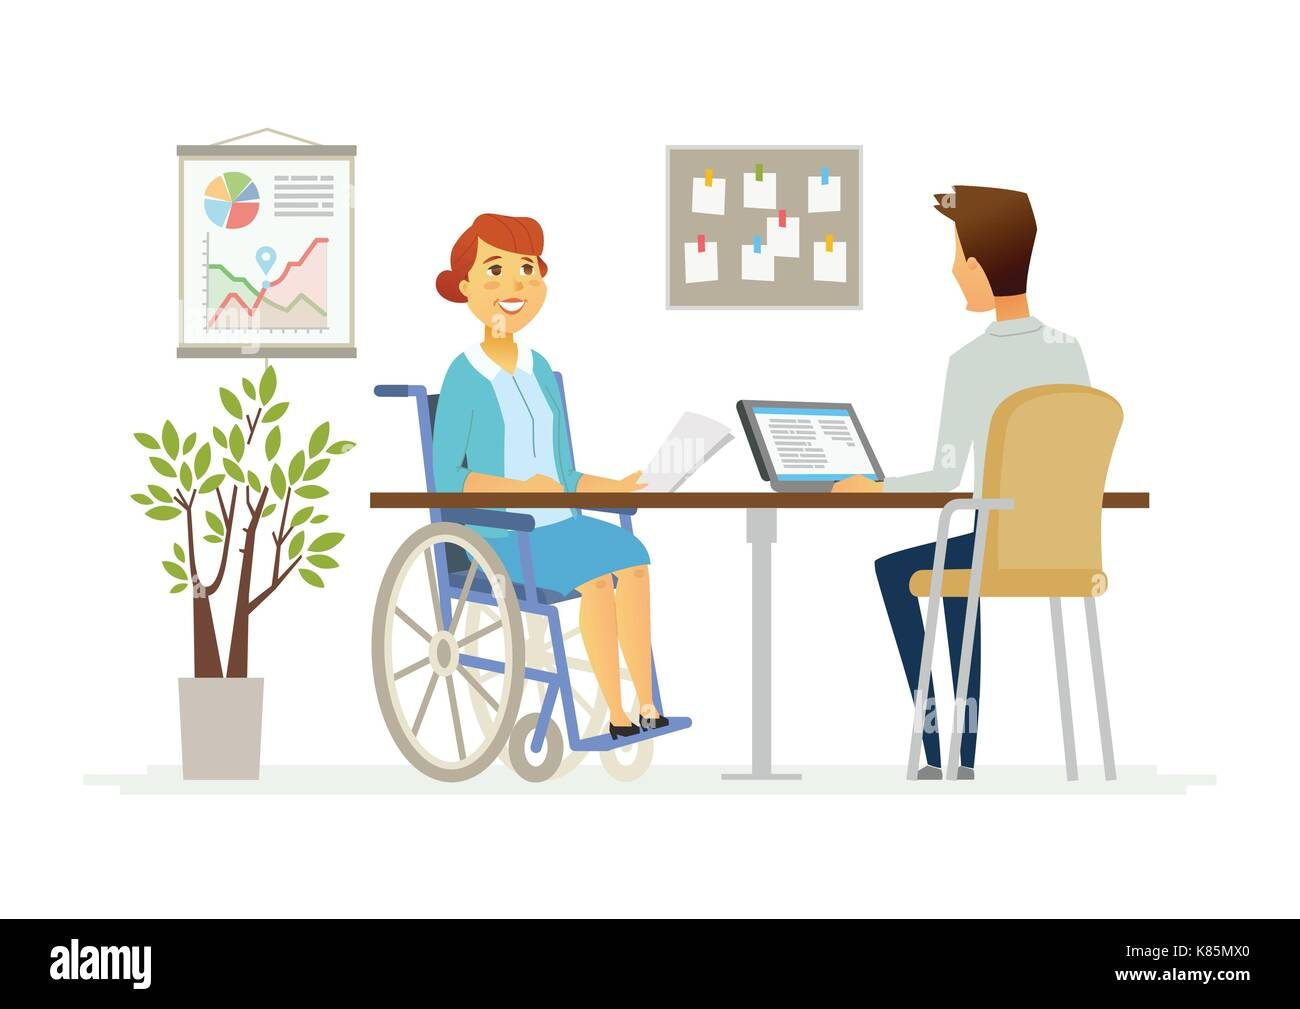 Disabled woman in the office - modern cartoon people characters illustration. A person in a wheelchair talks to a young colleague working at a tablet  - Stock Vector